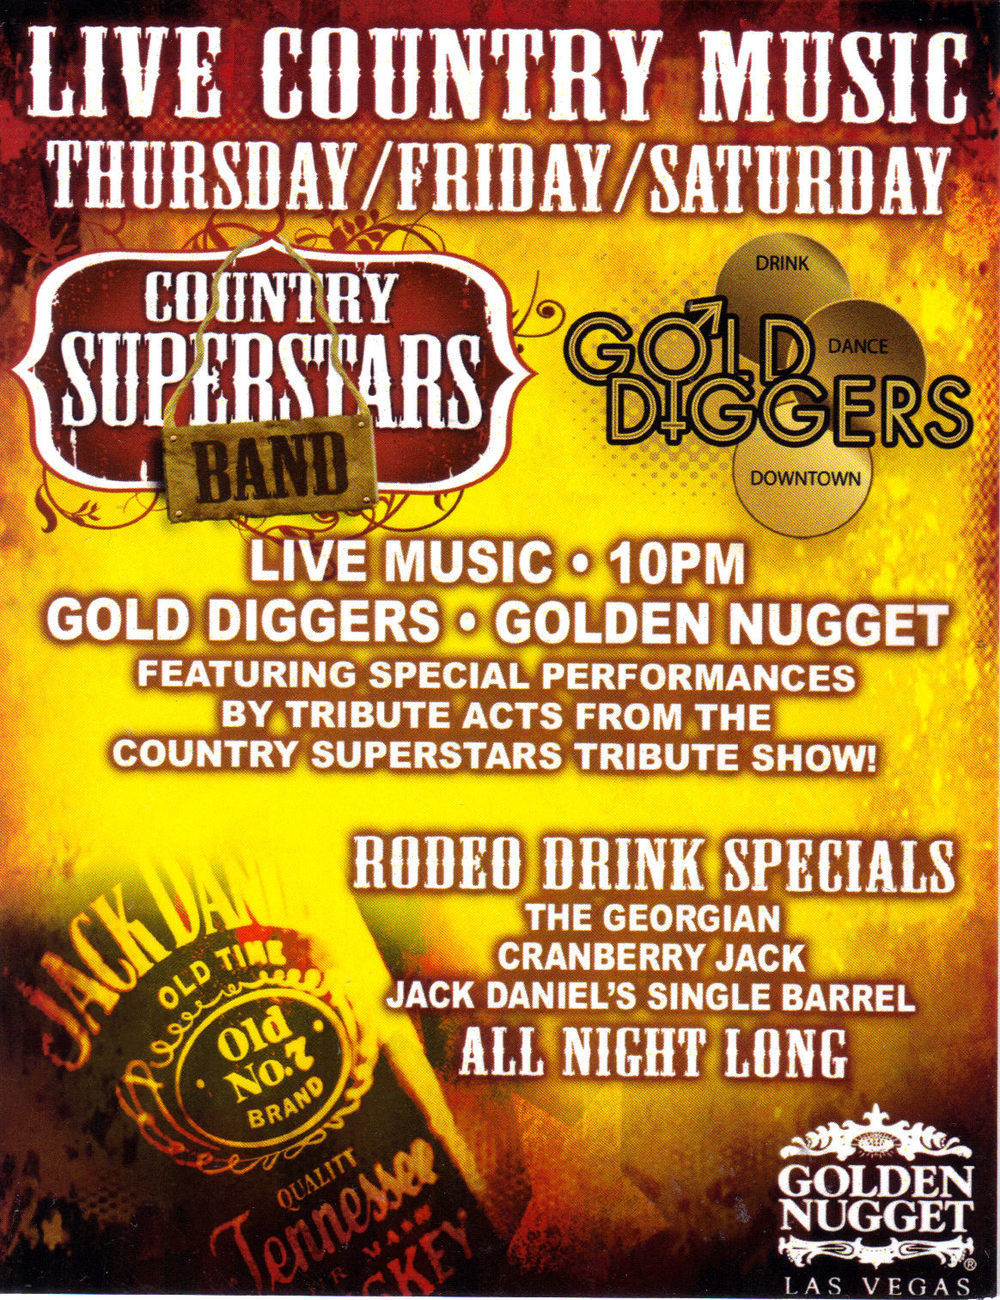 Golden nugget country superstar